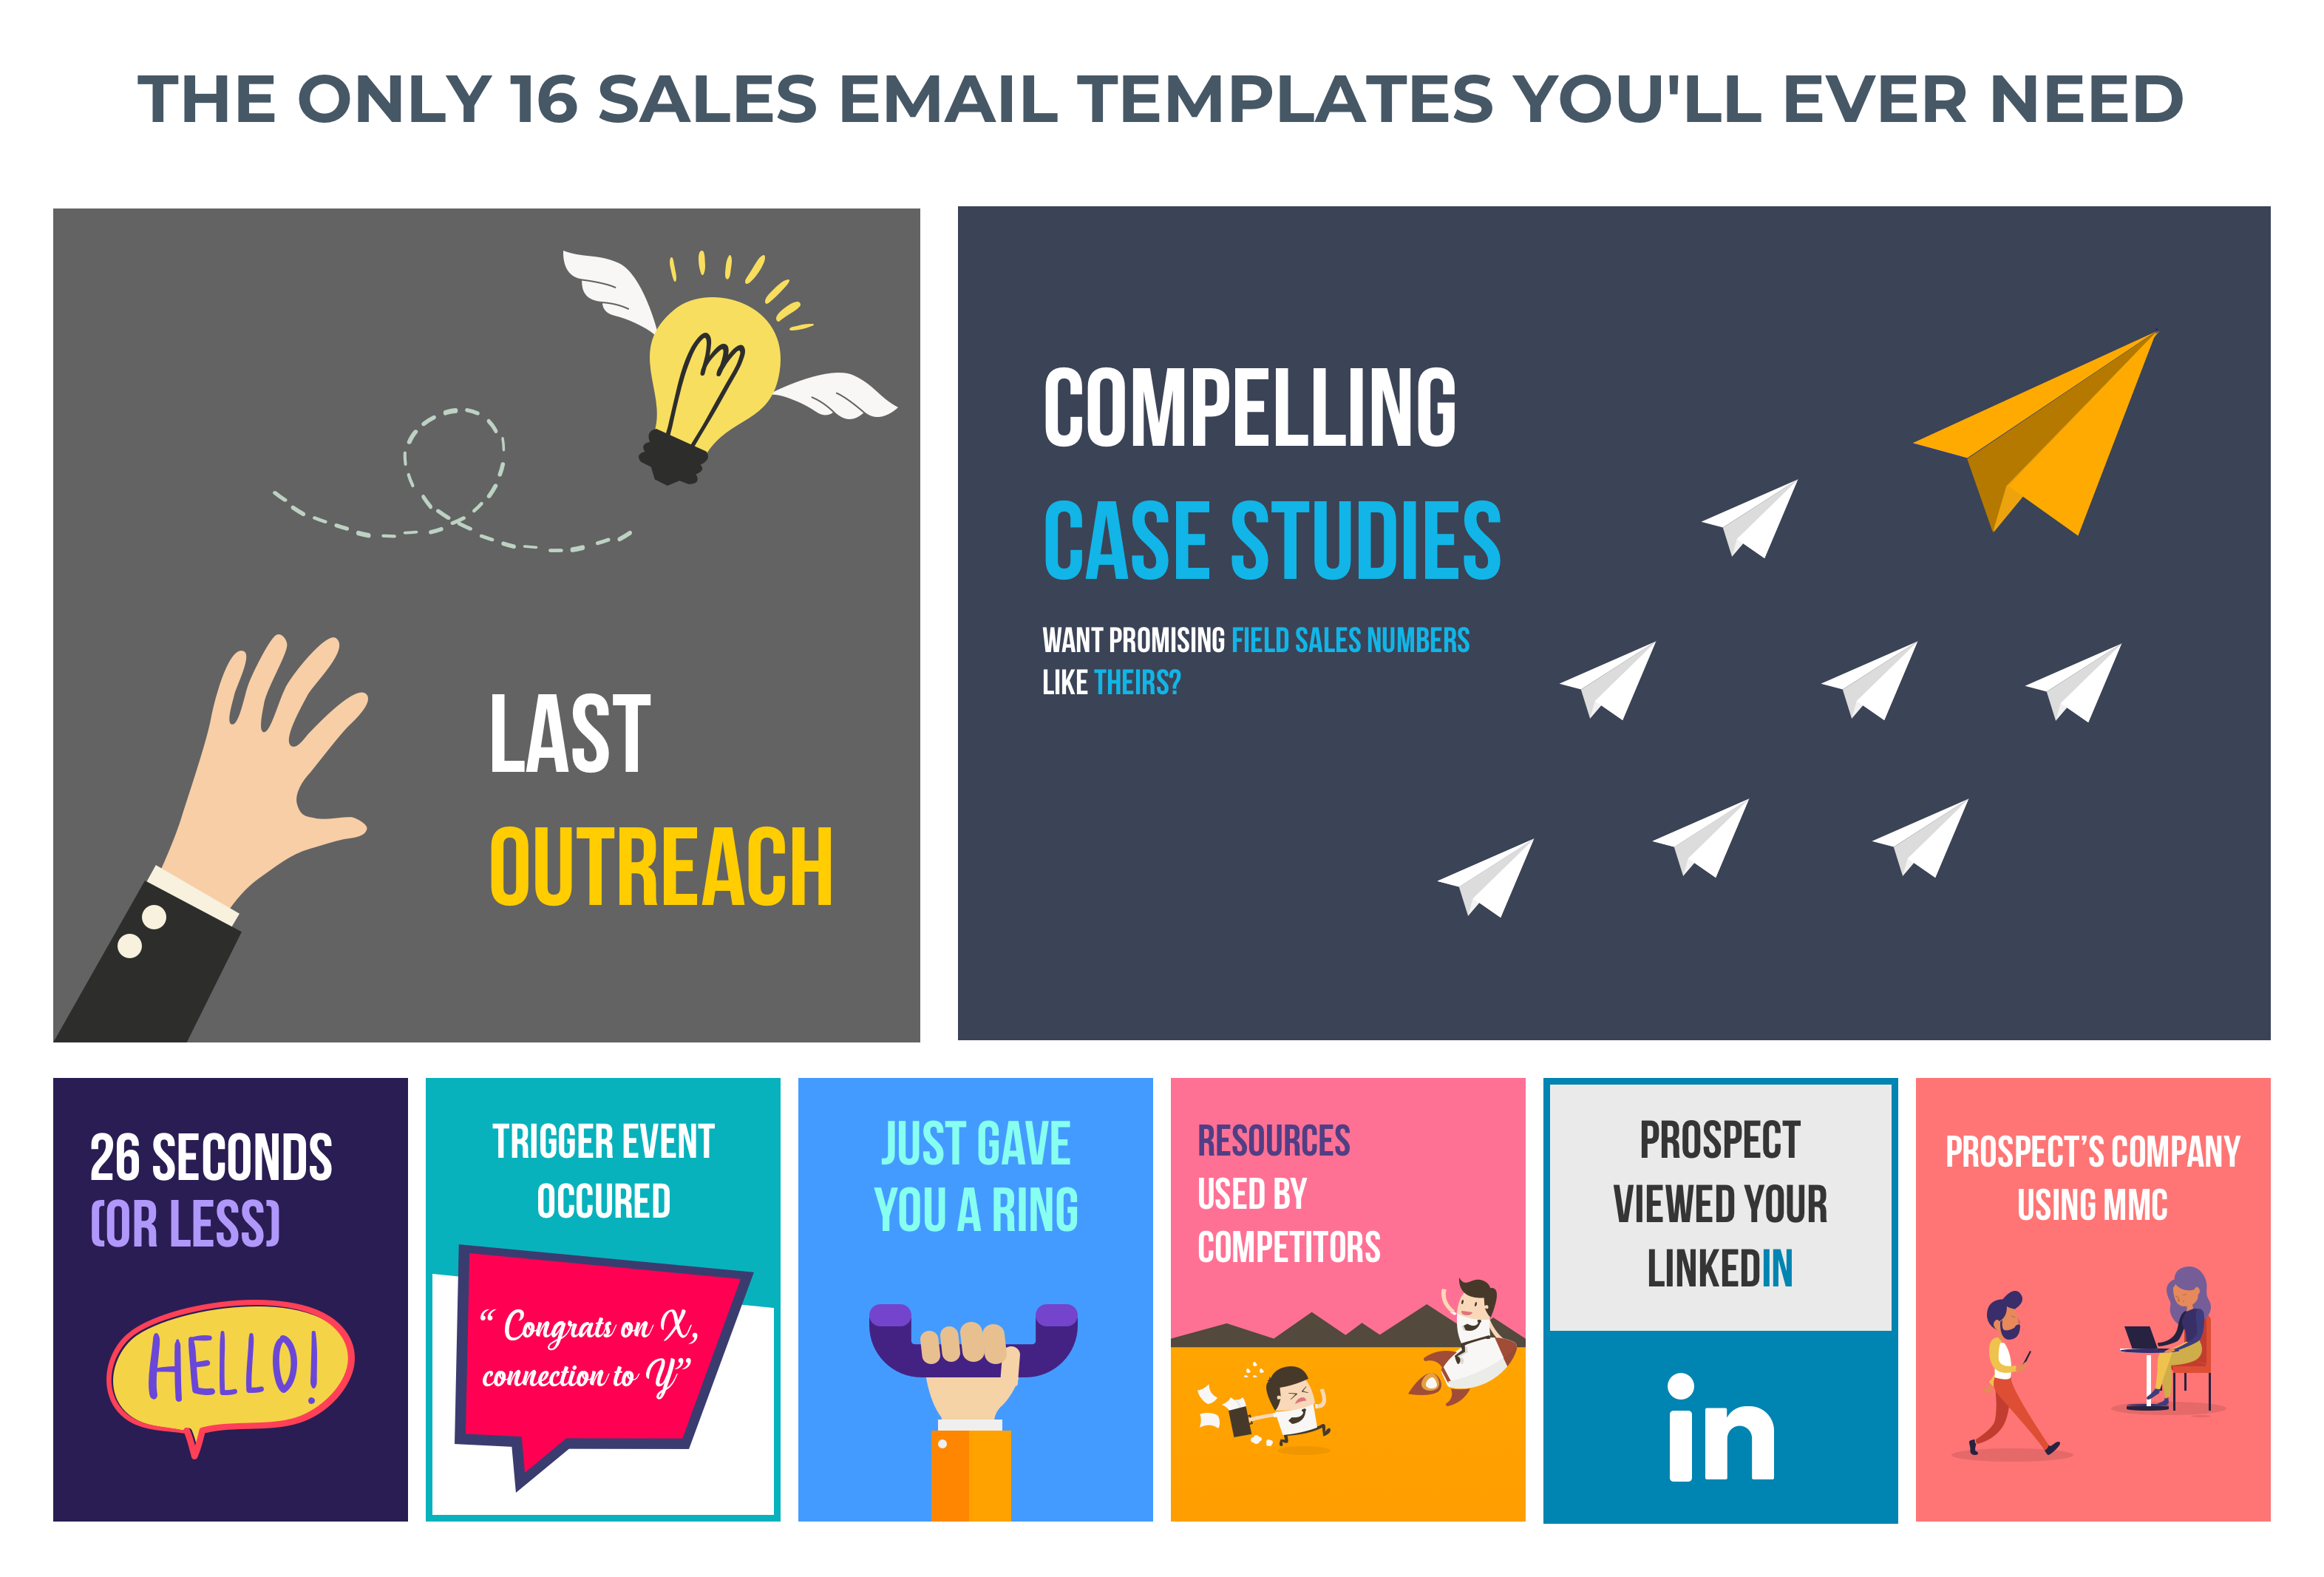 The Only 16 Sales Email Templates You'll Ever Need